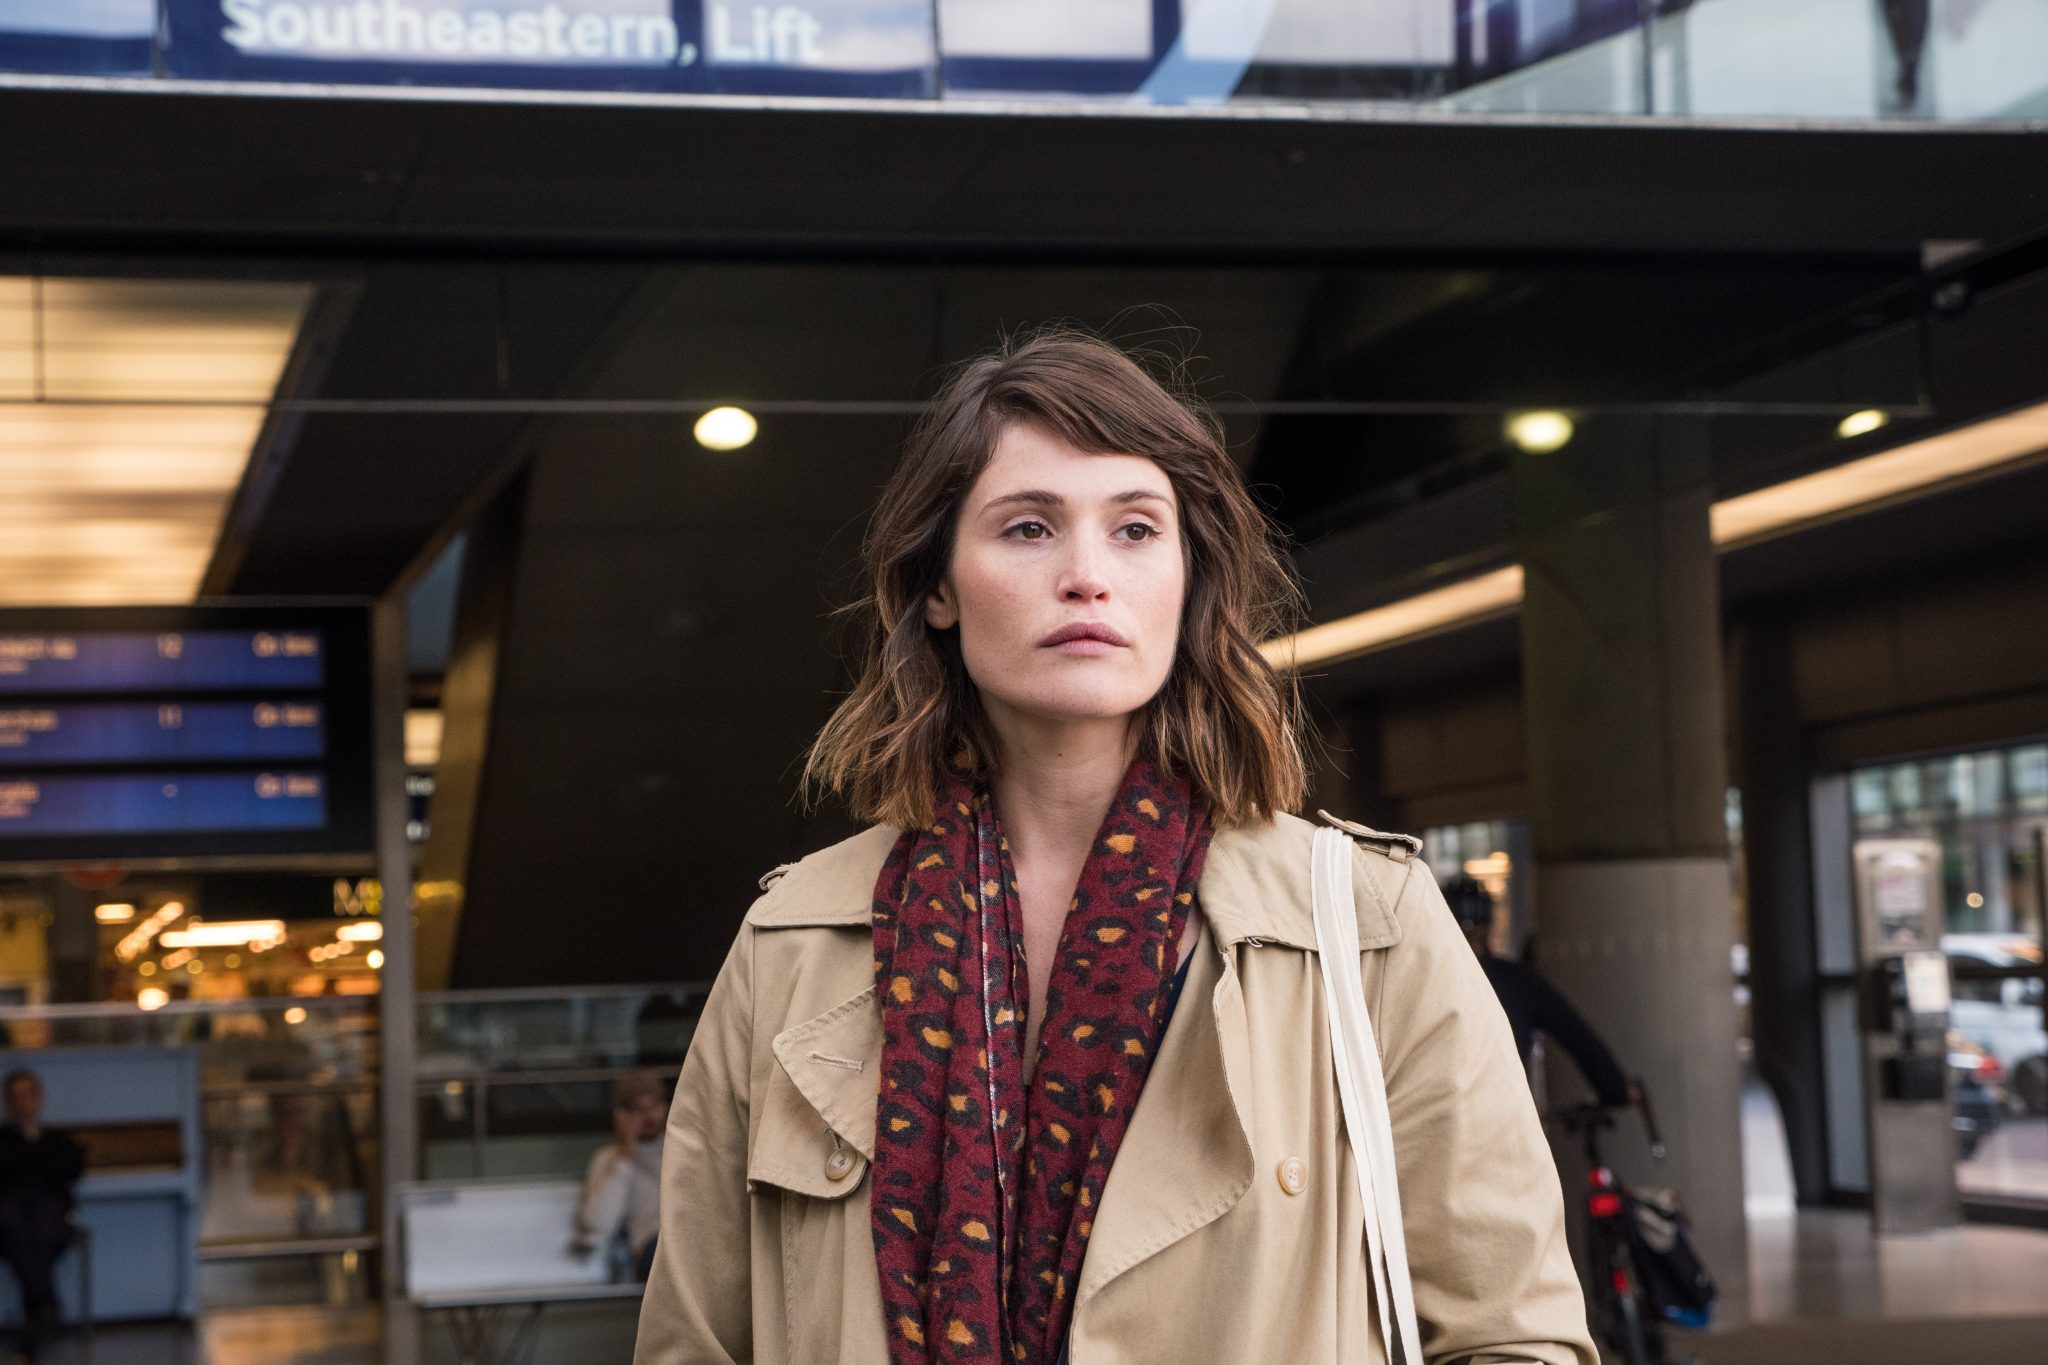 The Escape, il nuovo film di Dominic Savage con Gemma Arterton